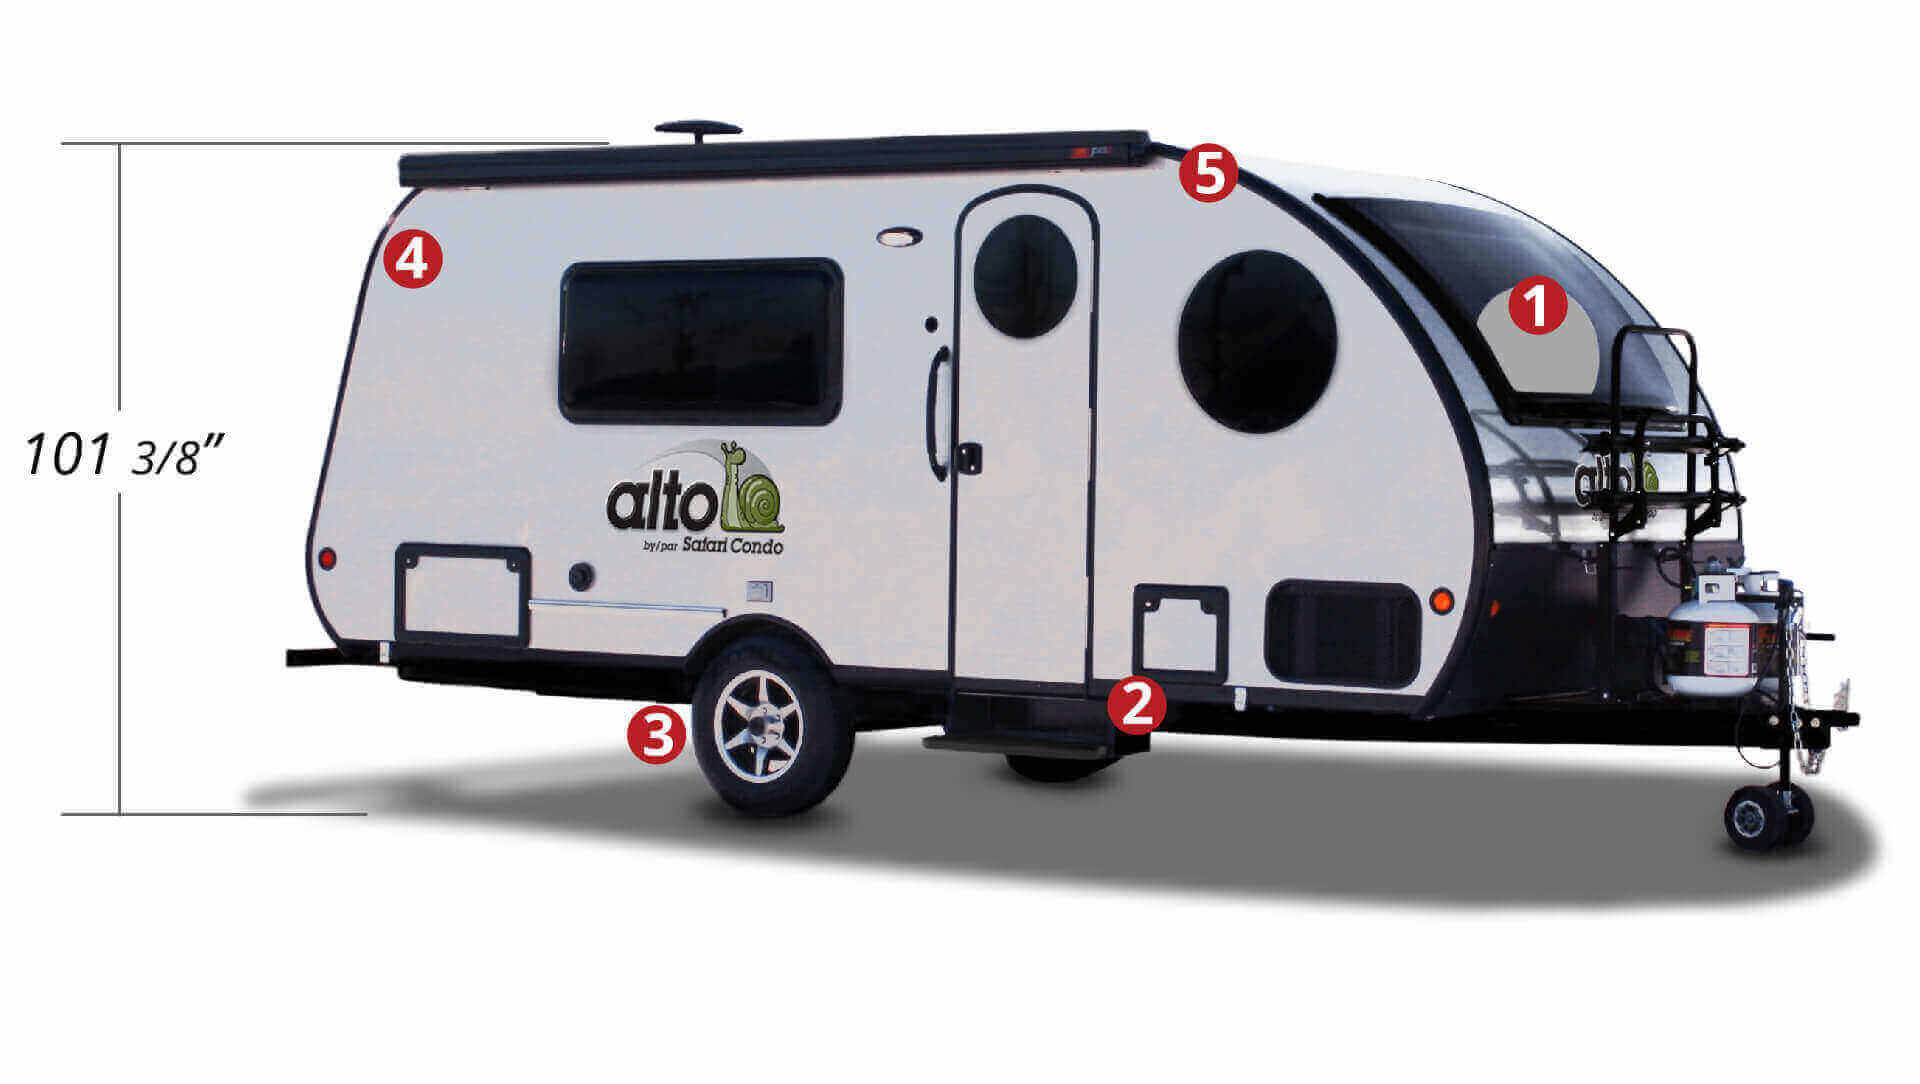 Travel Trailers (Alto) | Safari Condo